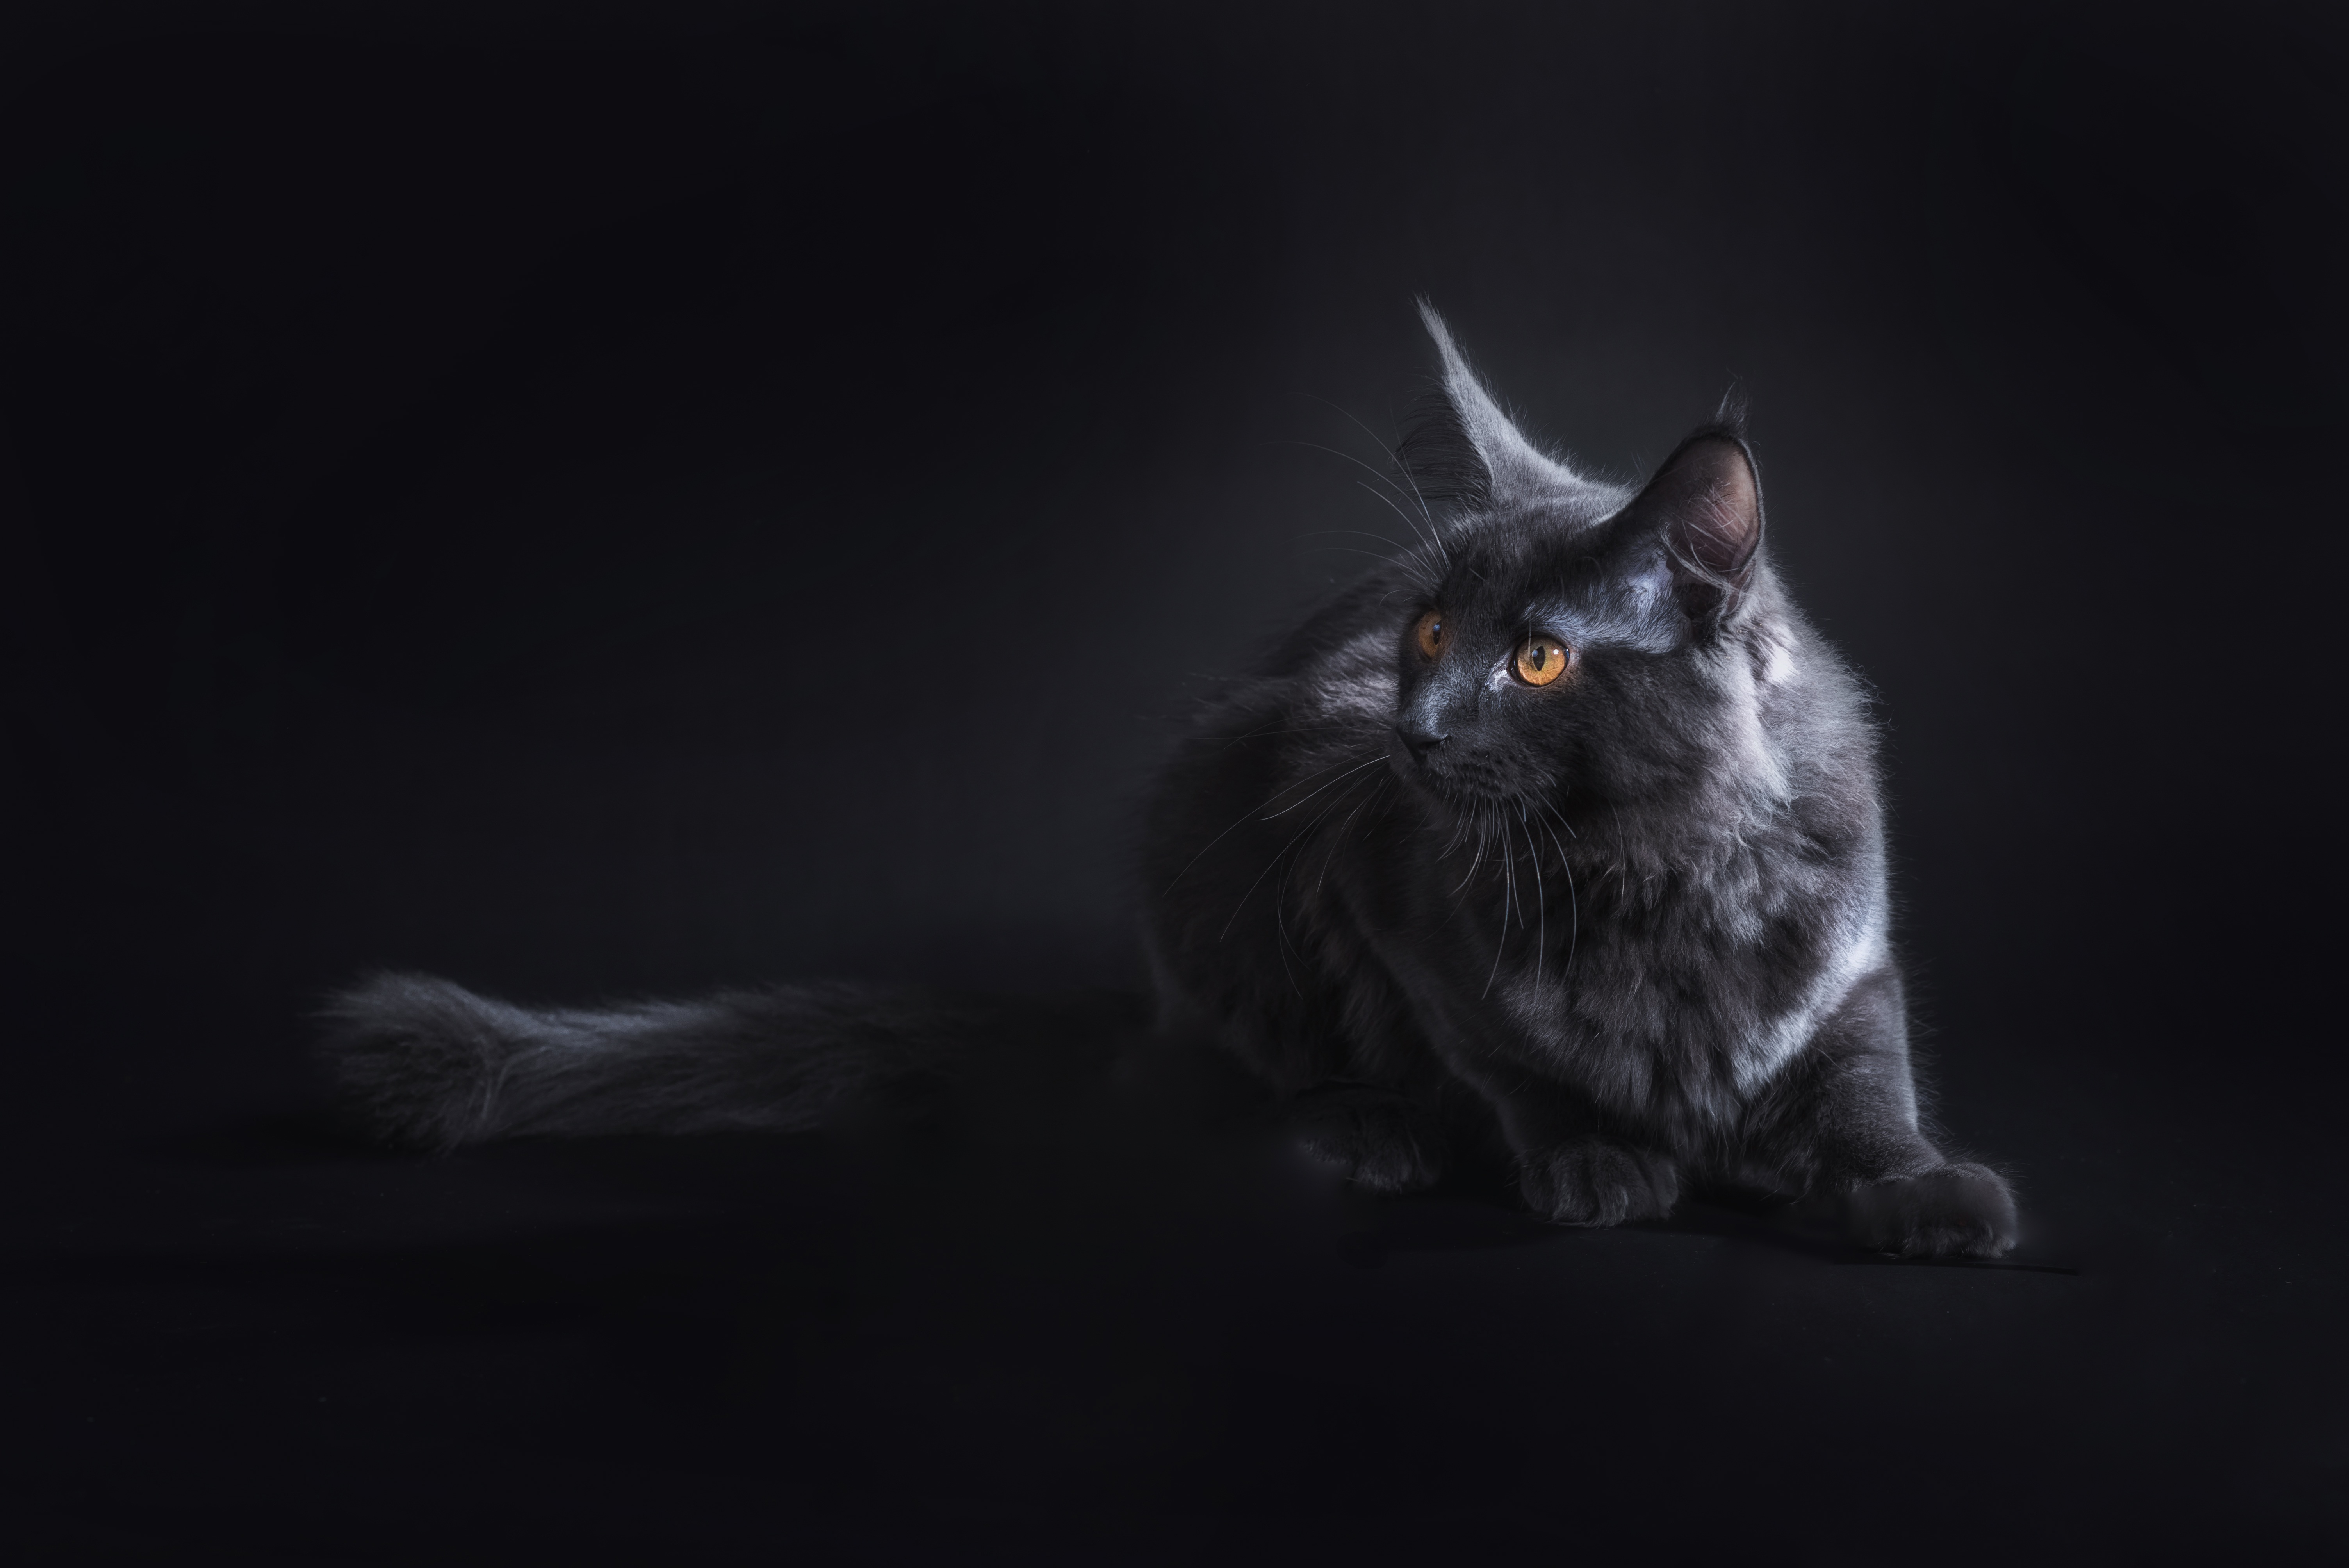 1920x1080 Black Cat 5k Laptop Full Hd 1080p Hd 4k Wallpapers Images Backgrounds Photos And Pictures